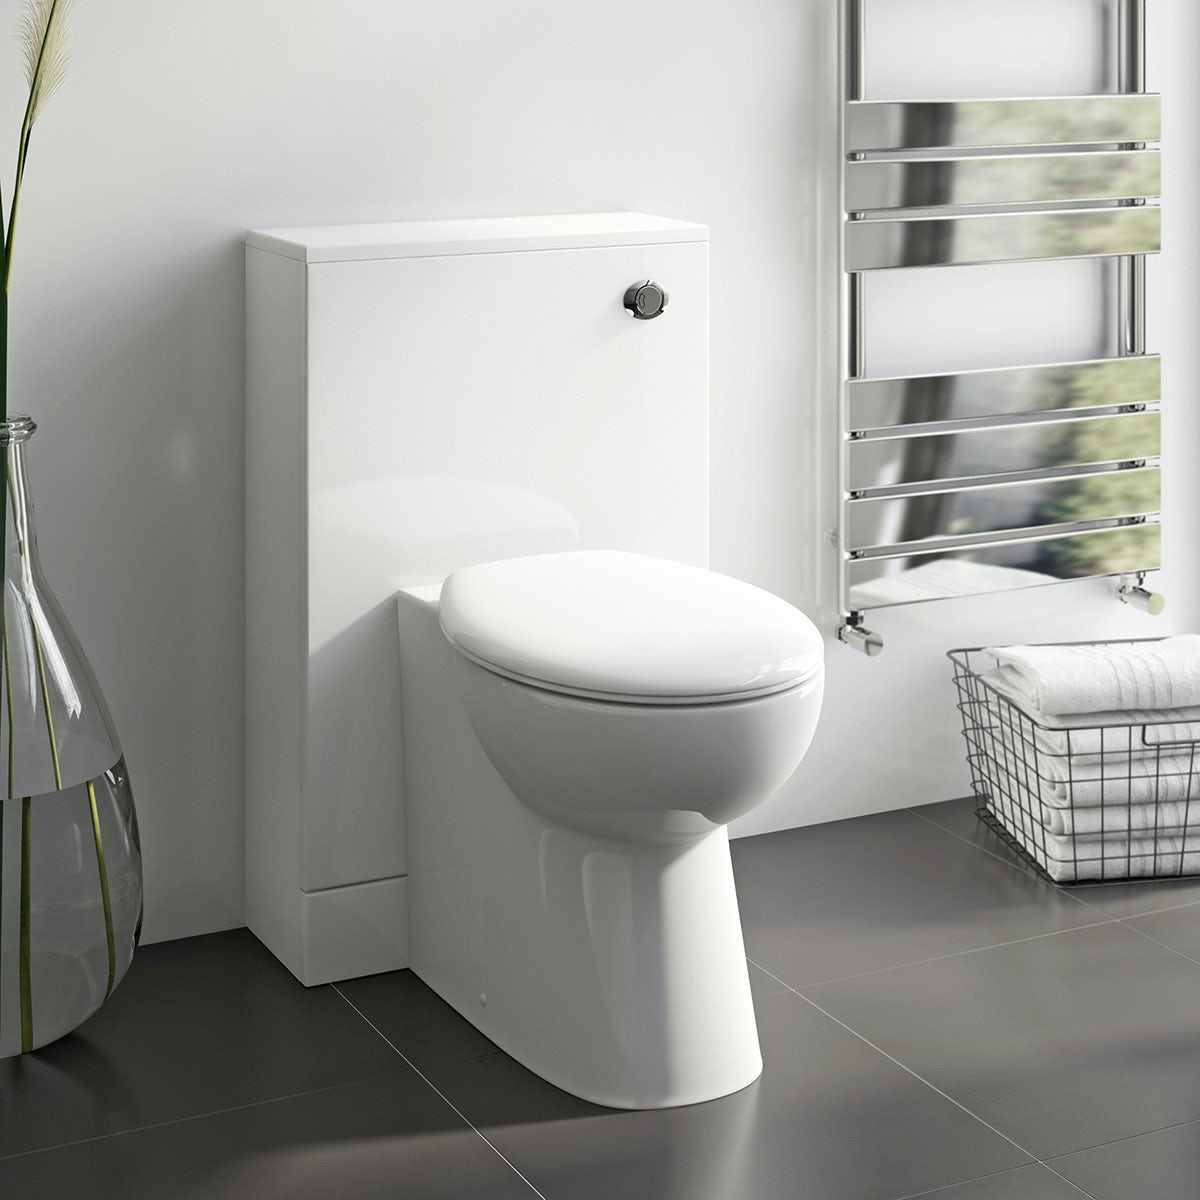 Chamonix back to wall unit with Orchard Derwent white slimline back to wall unit and Clarity toilet with seatback to wall toilet